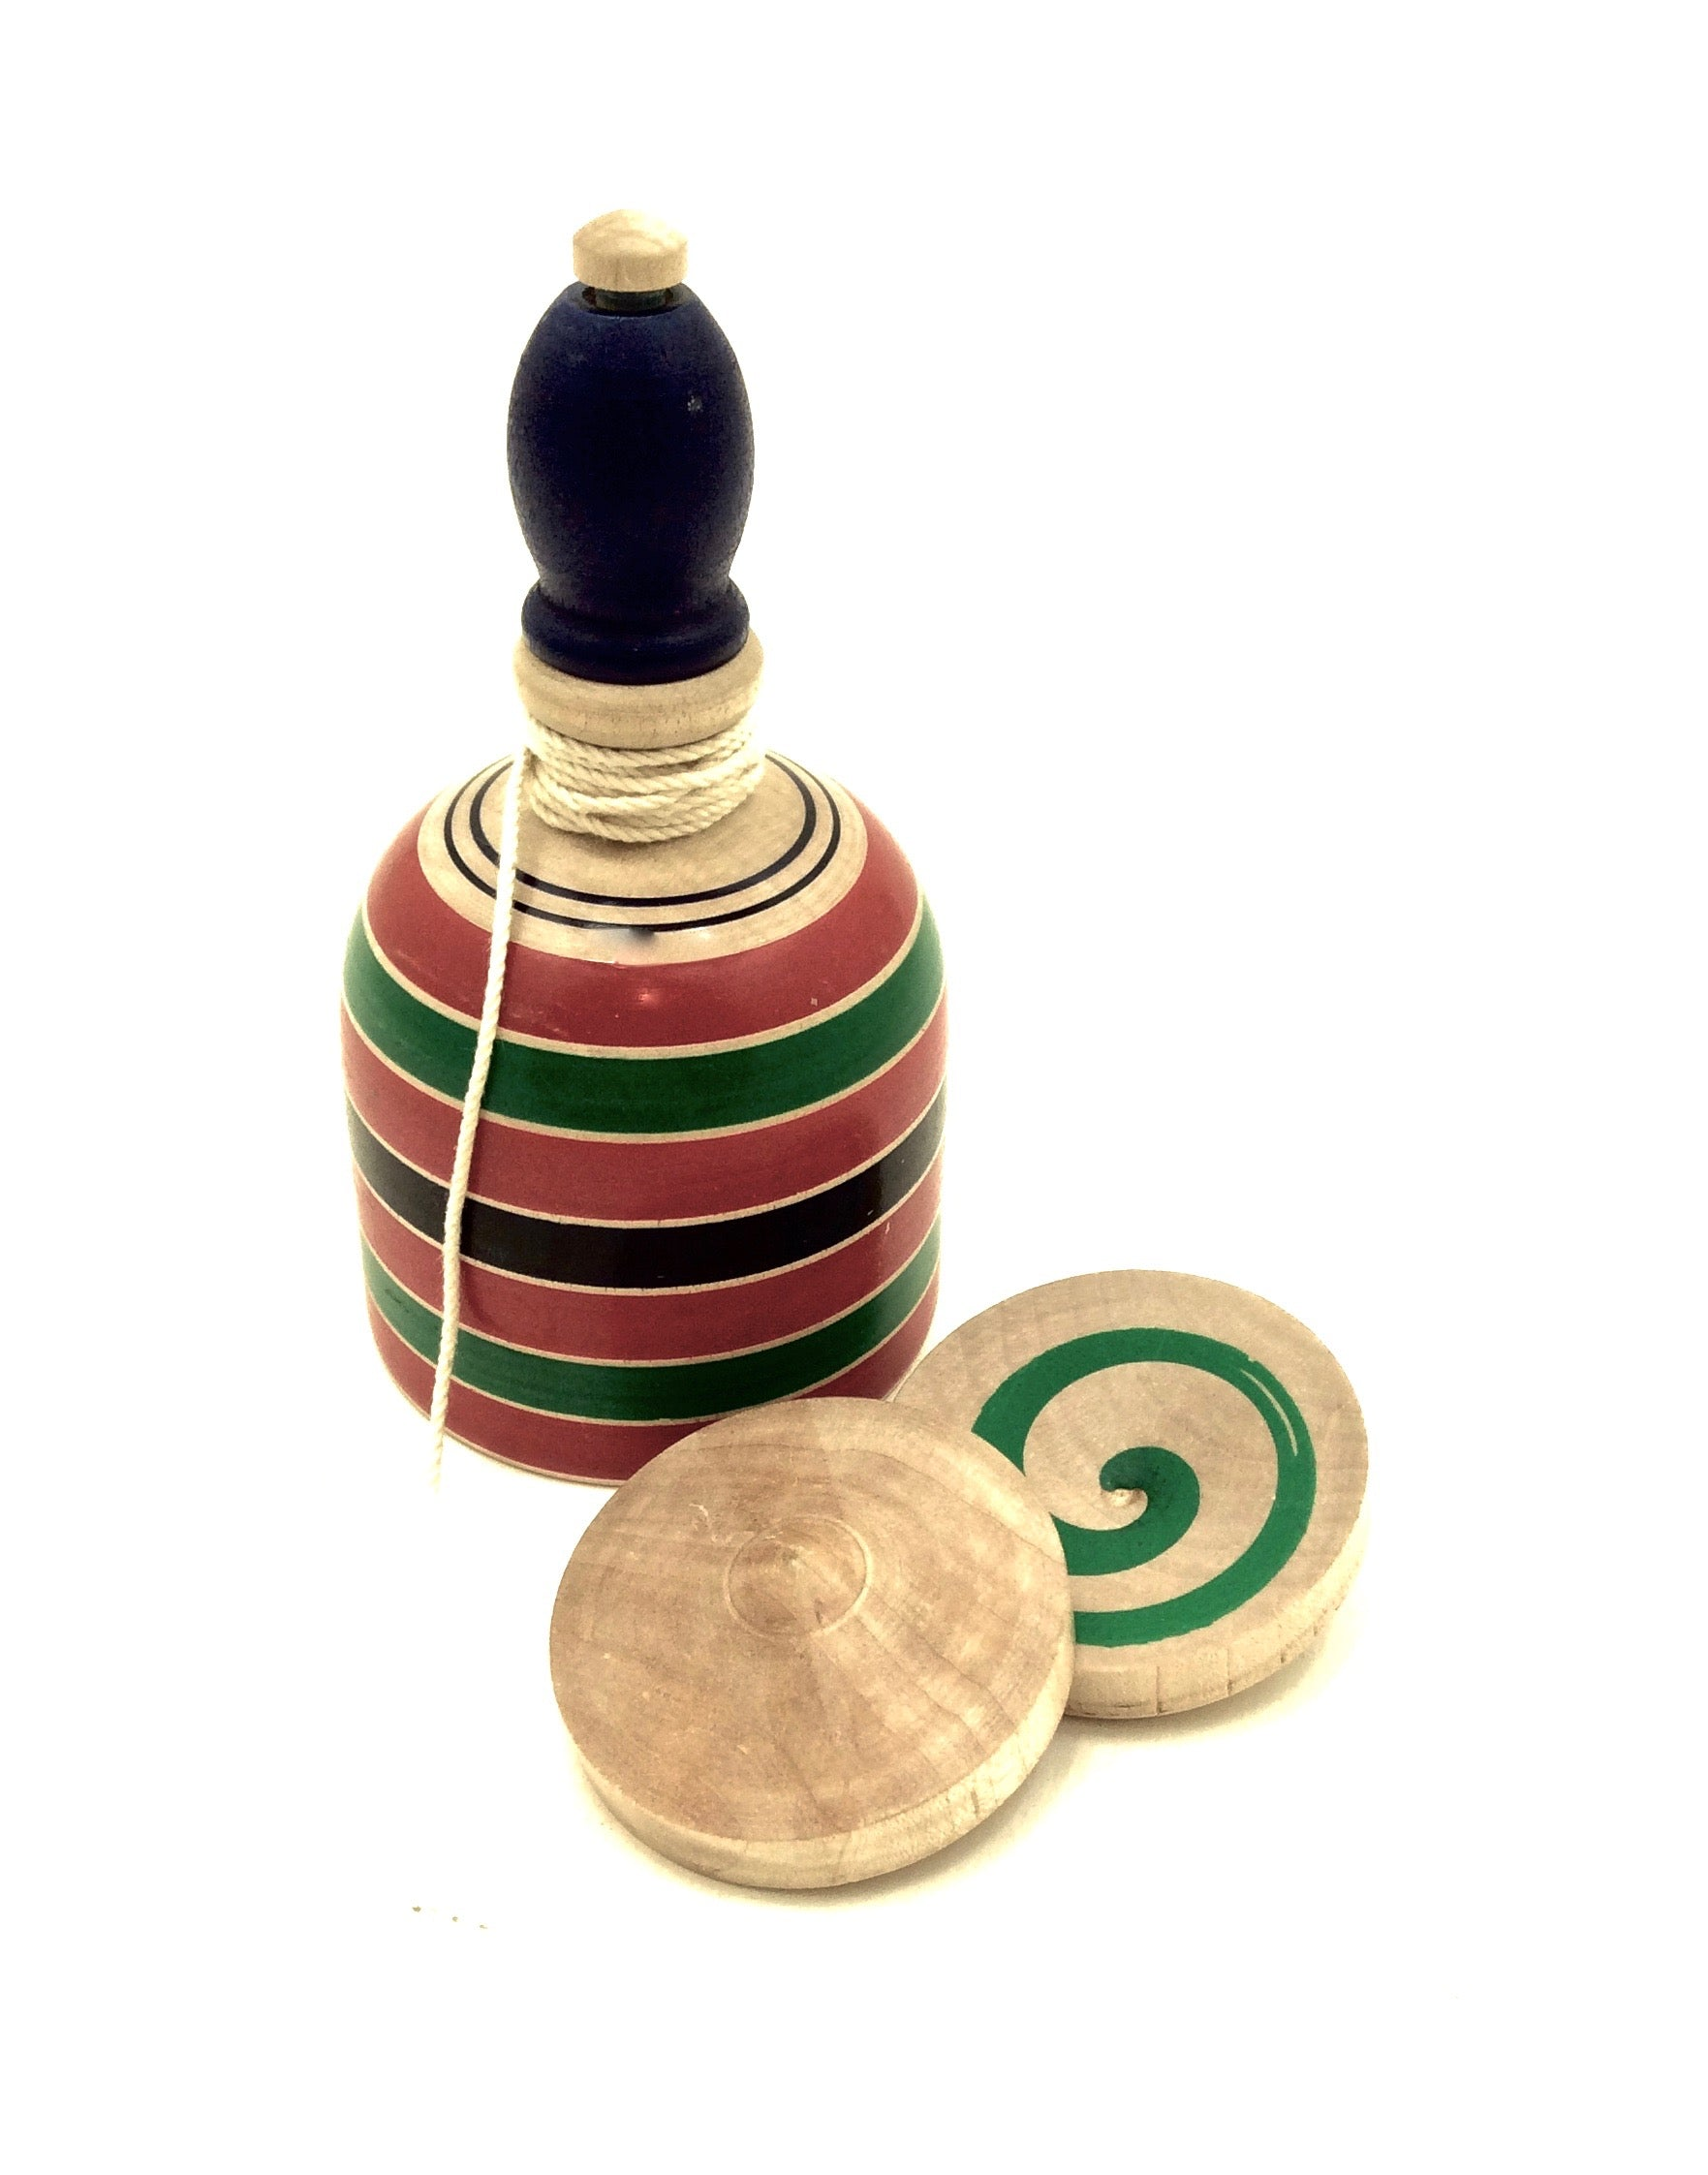 Japanese Traditional Spinning Top with Cord and Smaller Tops Inside | Vintage Koma